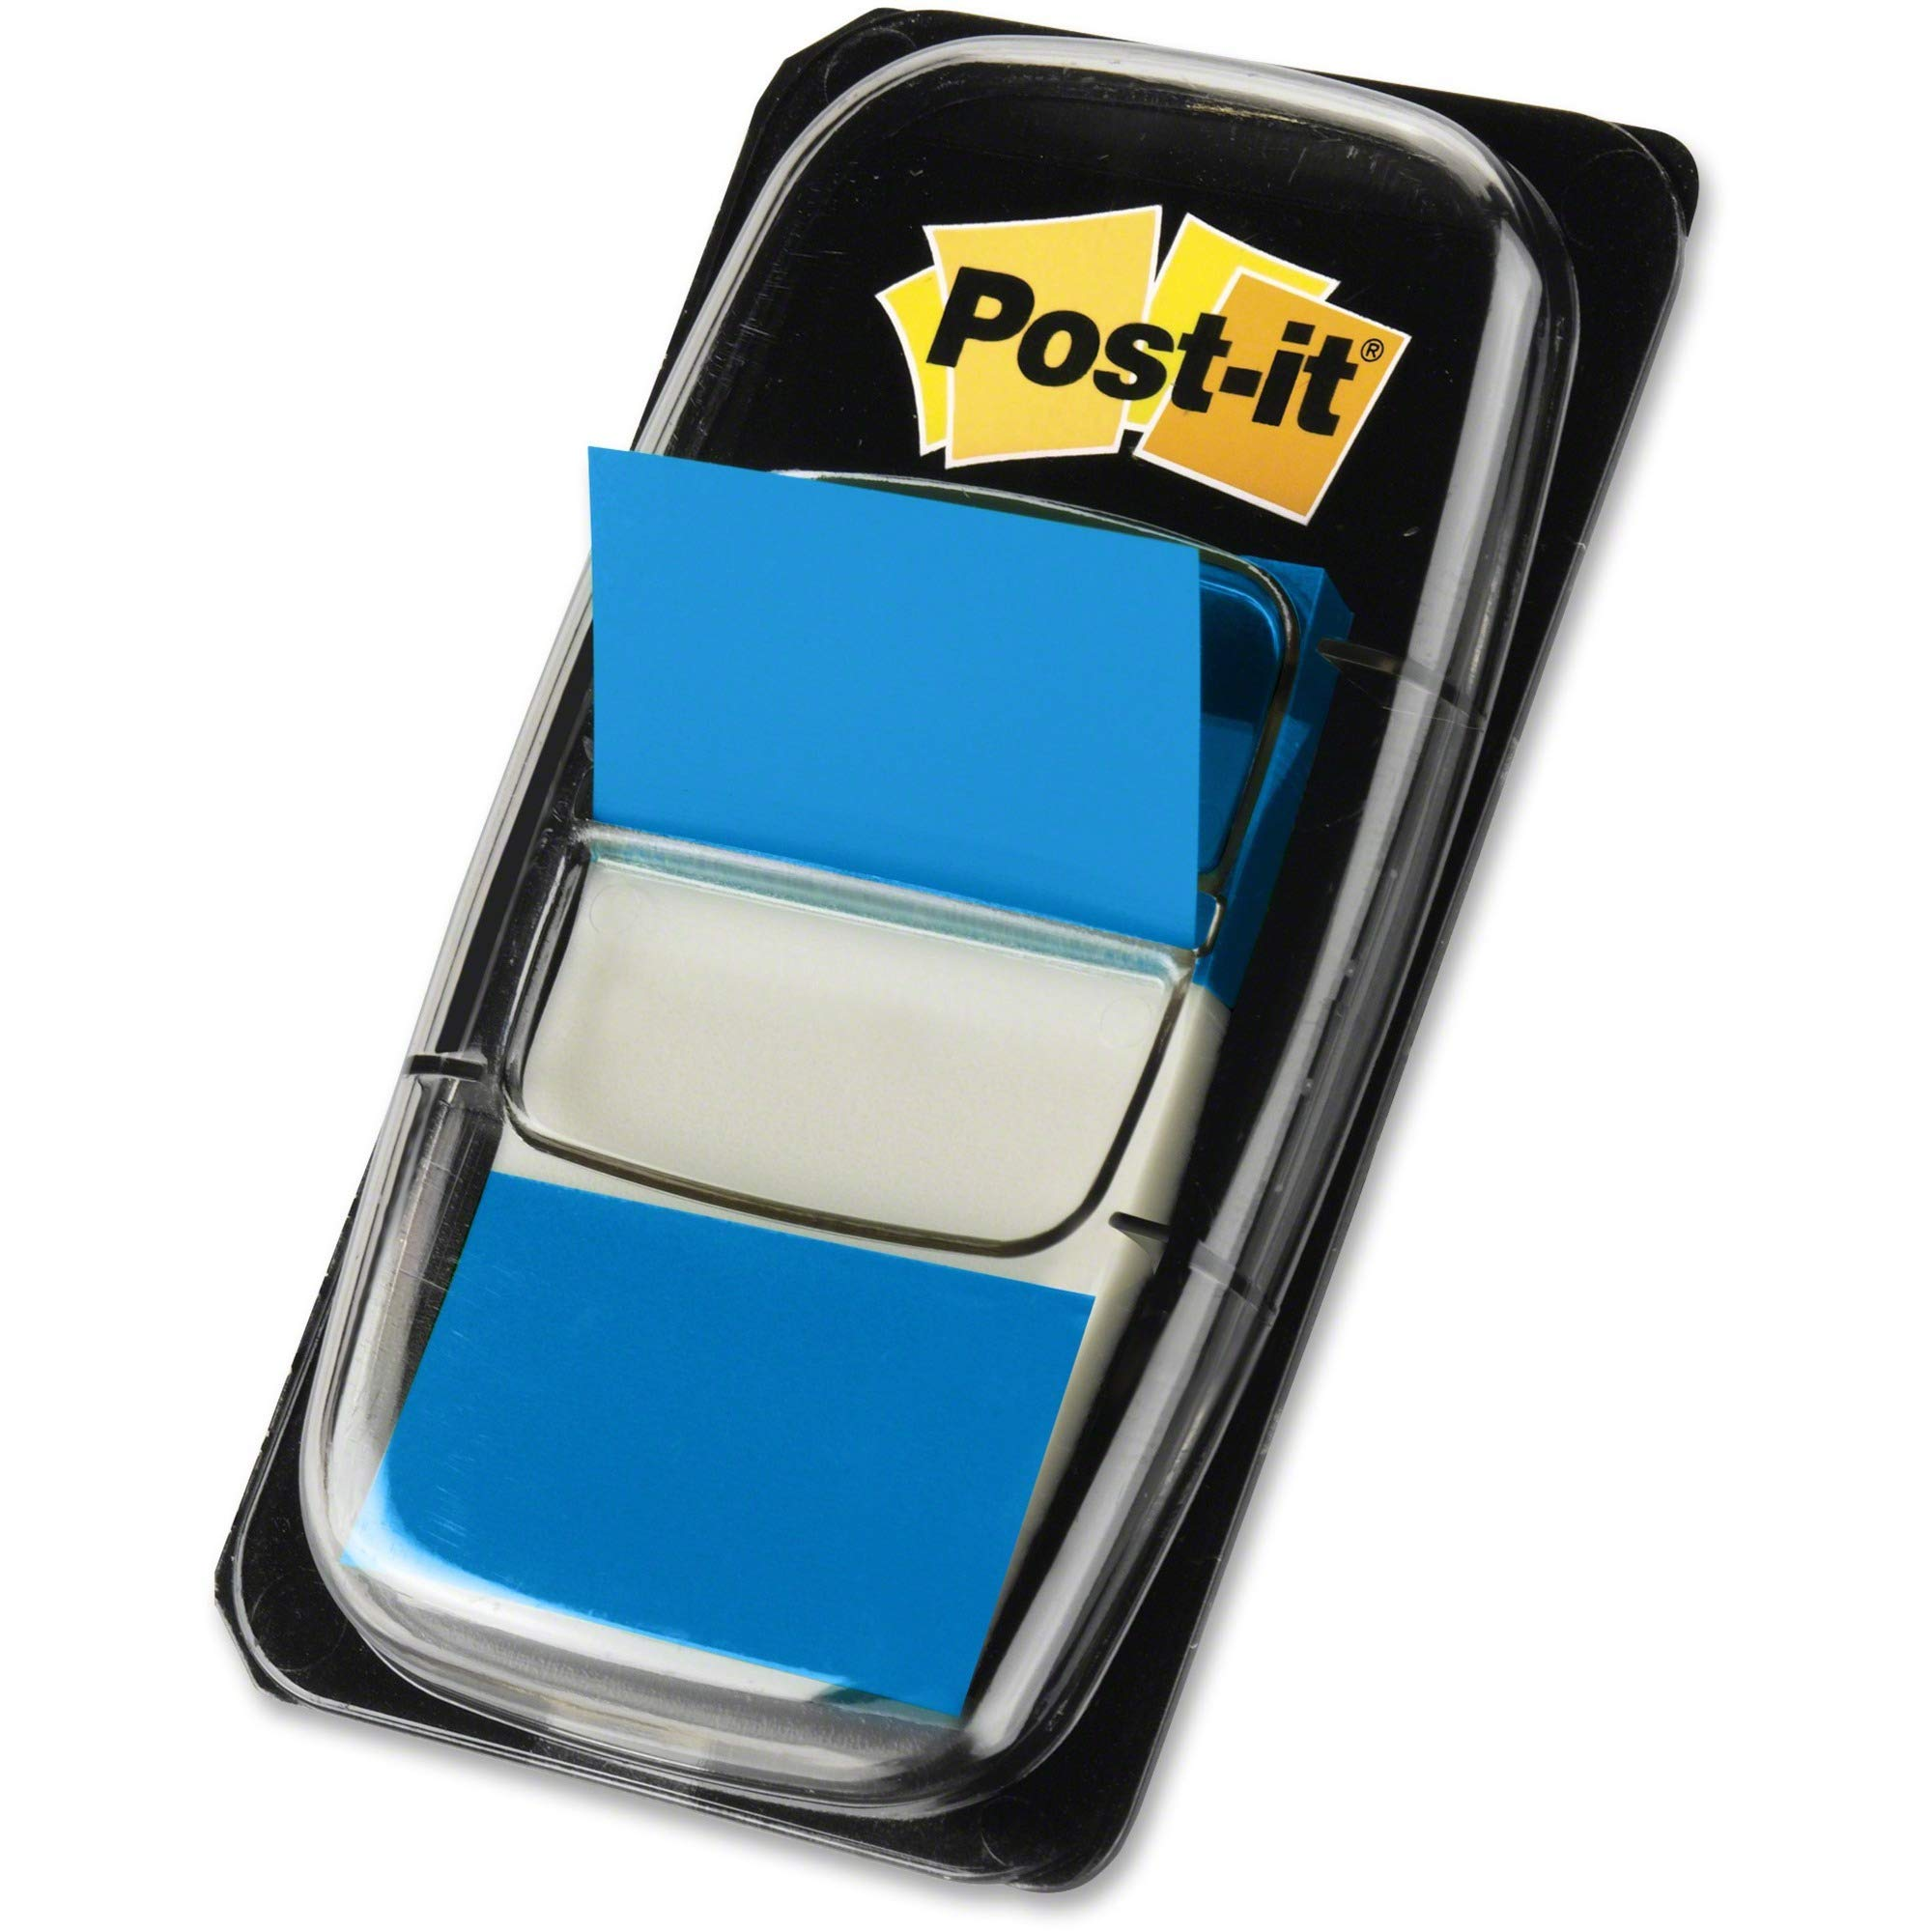 Post-it, MMM680BE12, Flags Value Pack, Blue, 1 Inch Wide, 50/Dispenser, 12 Dispensers/Pack, Sold As 6 Packs (Total 3600 Dispensers) (Renewed) by Post-it